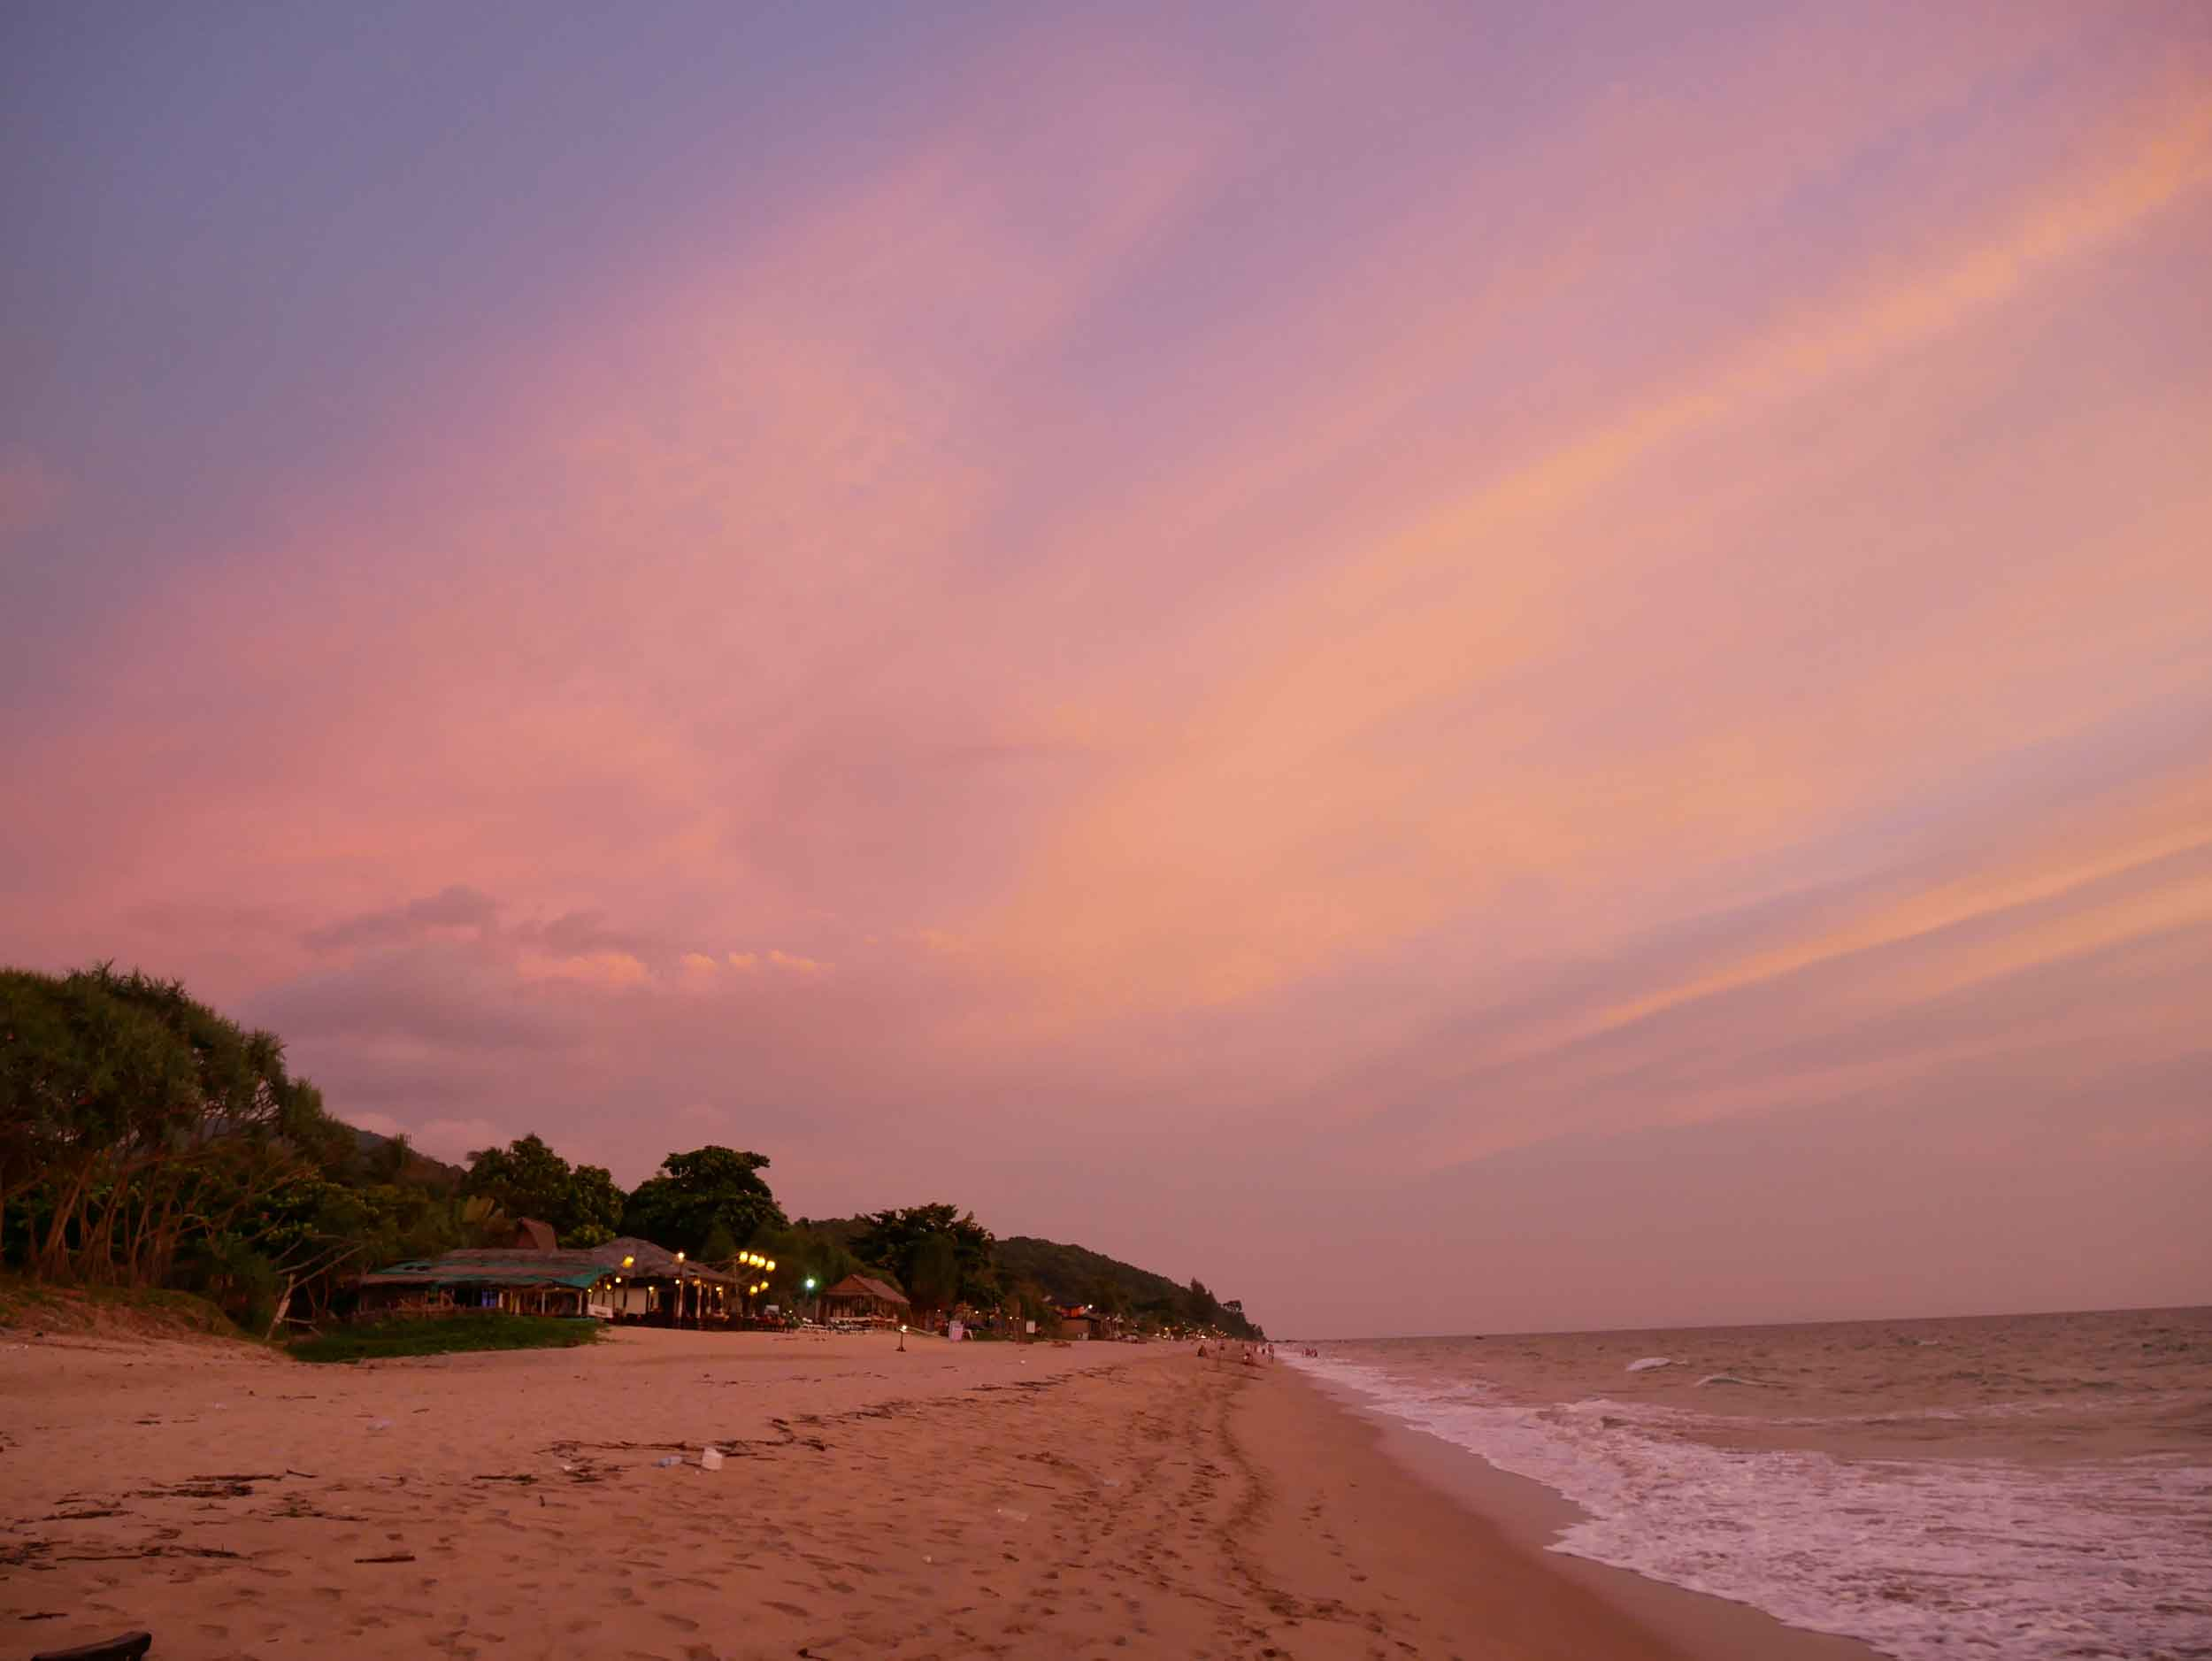 Another colorful sunset, spotlighting the many open air bars and restaurants that line the beach.